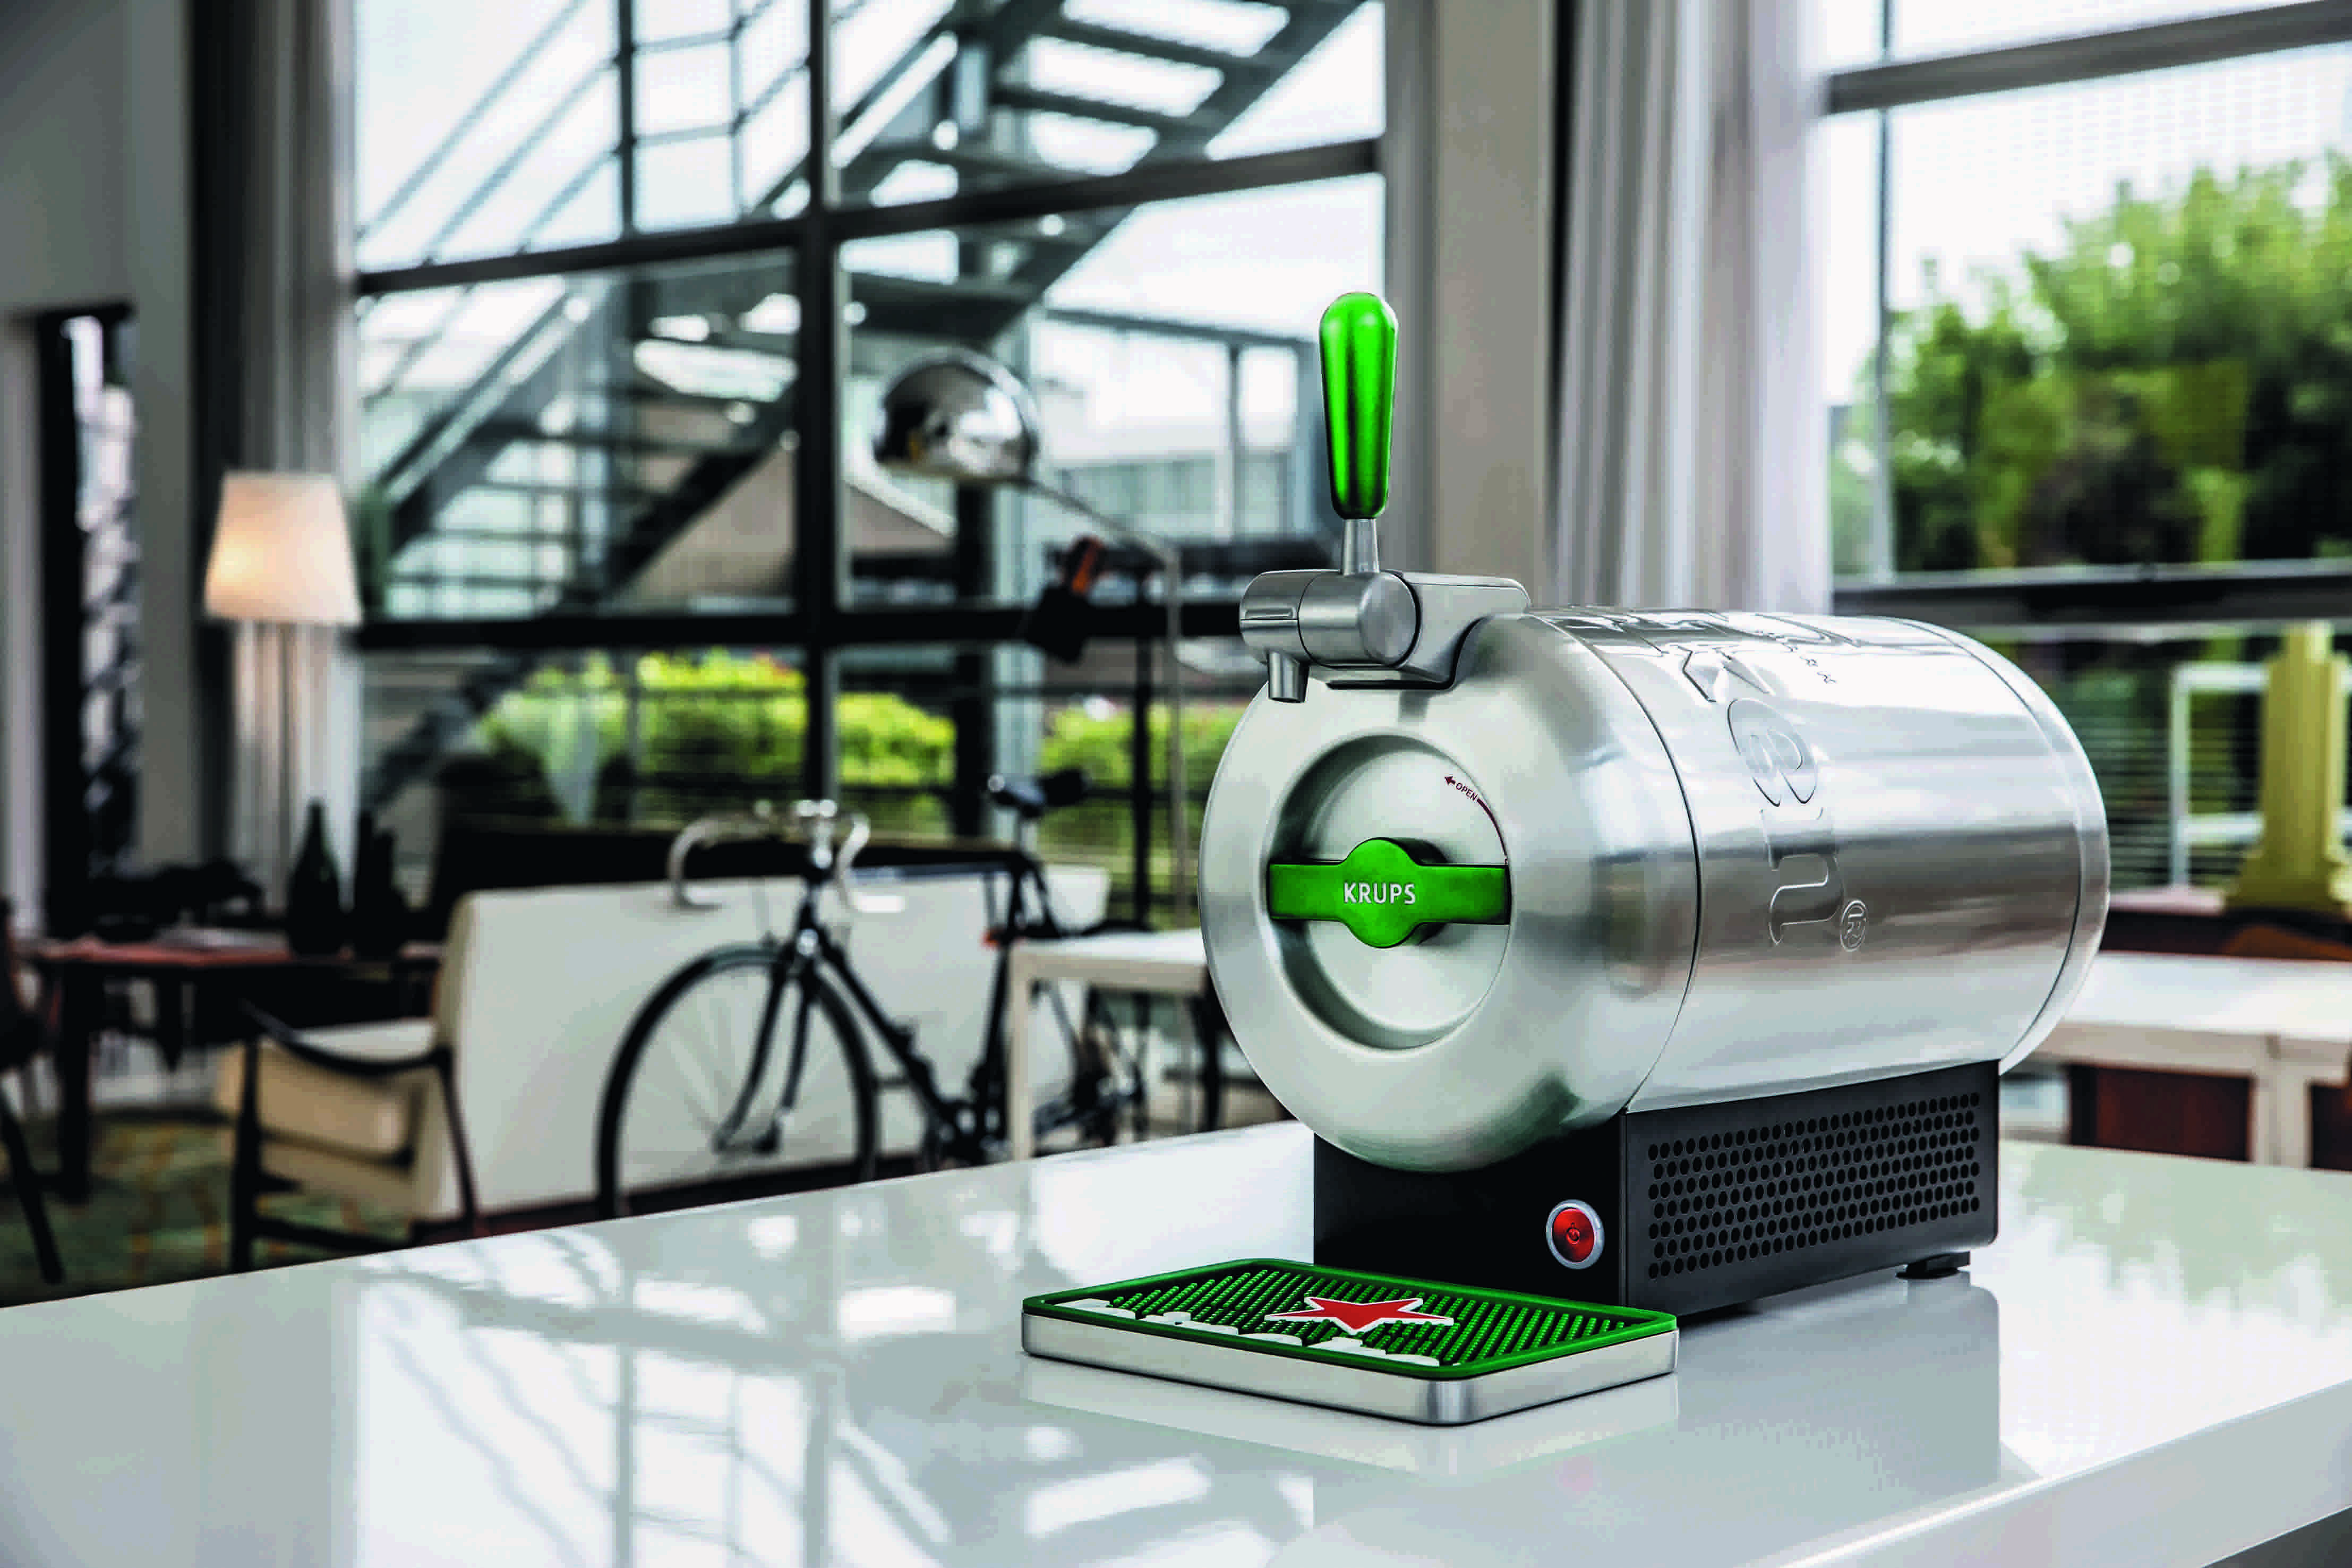 Tireuse A Biere Boulanger The Sub Beer Dispenser And Torp Refill System By Marc Newson And